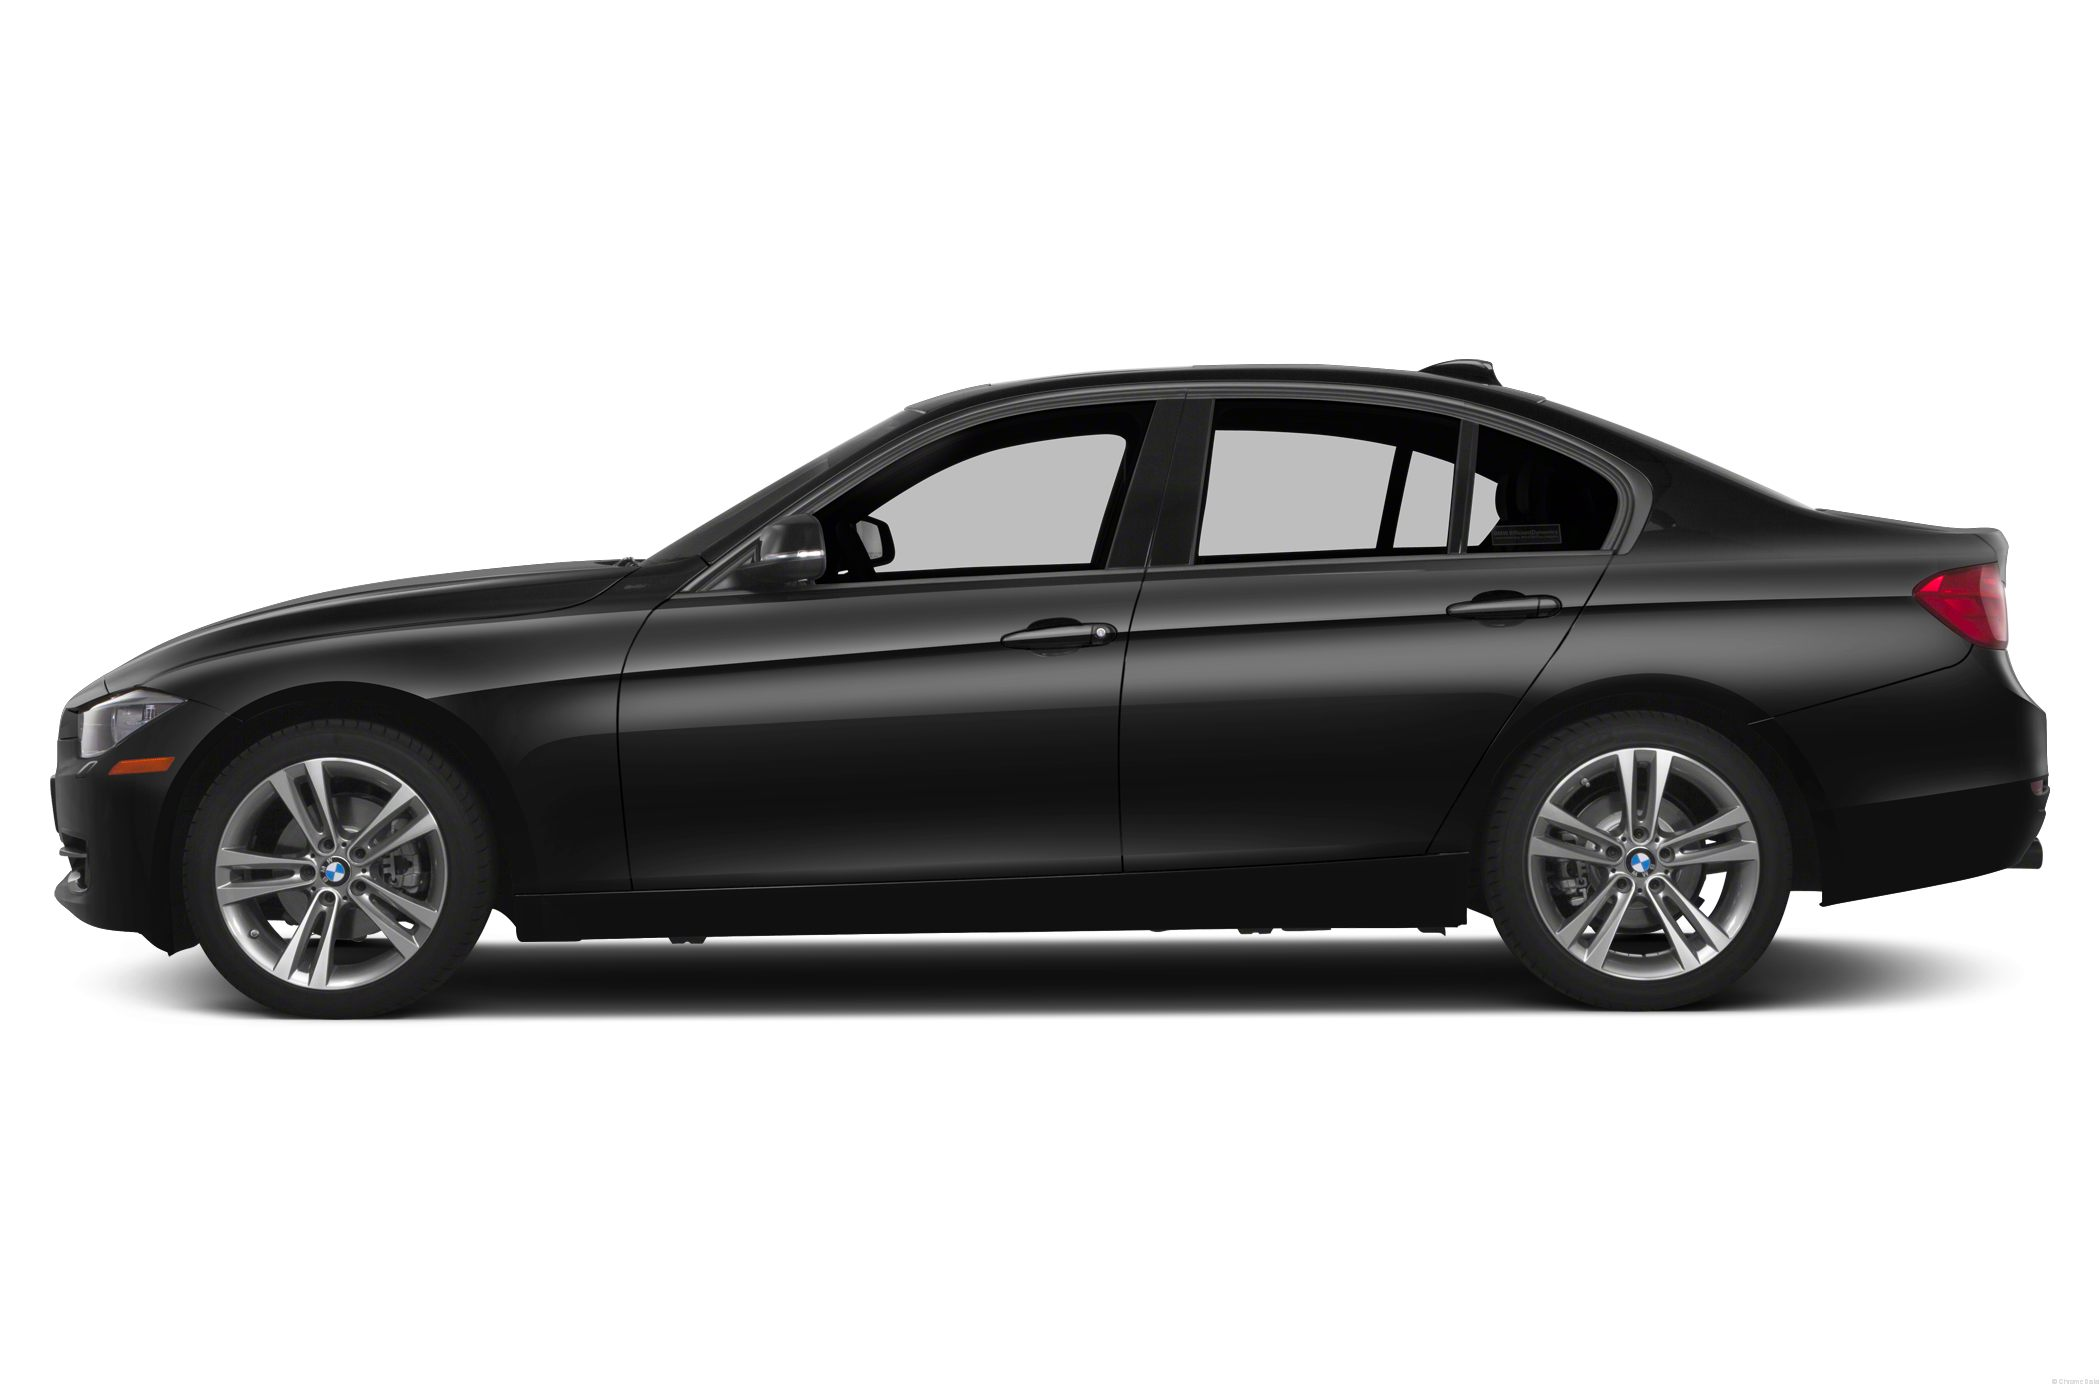 Bmw 335 2013 Review Amazing Pictures And Images Look